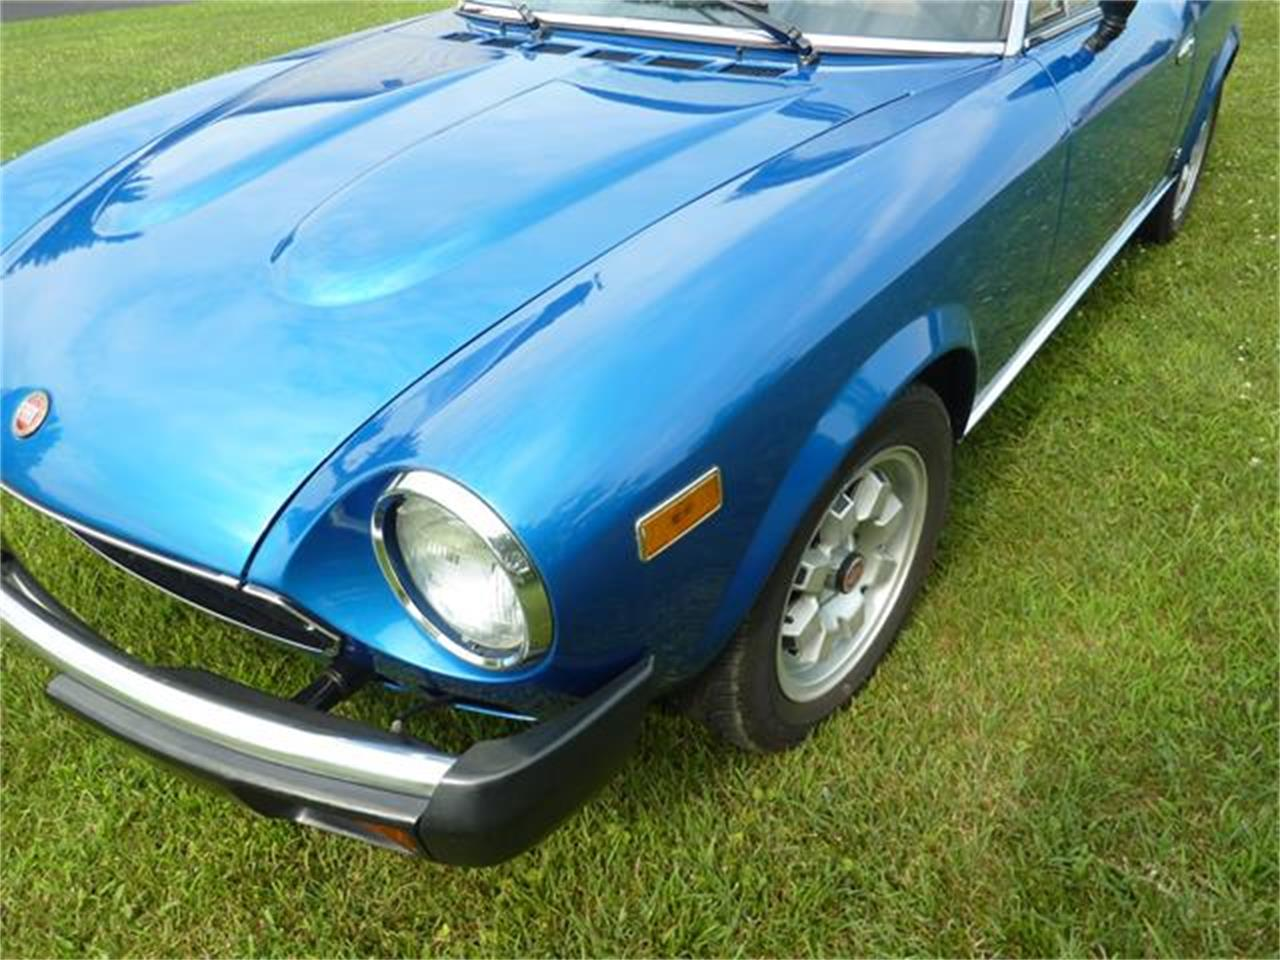 1980 Fiat 124 for sale in Mount Gilead, OH – photo 20